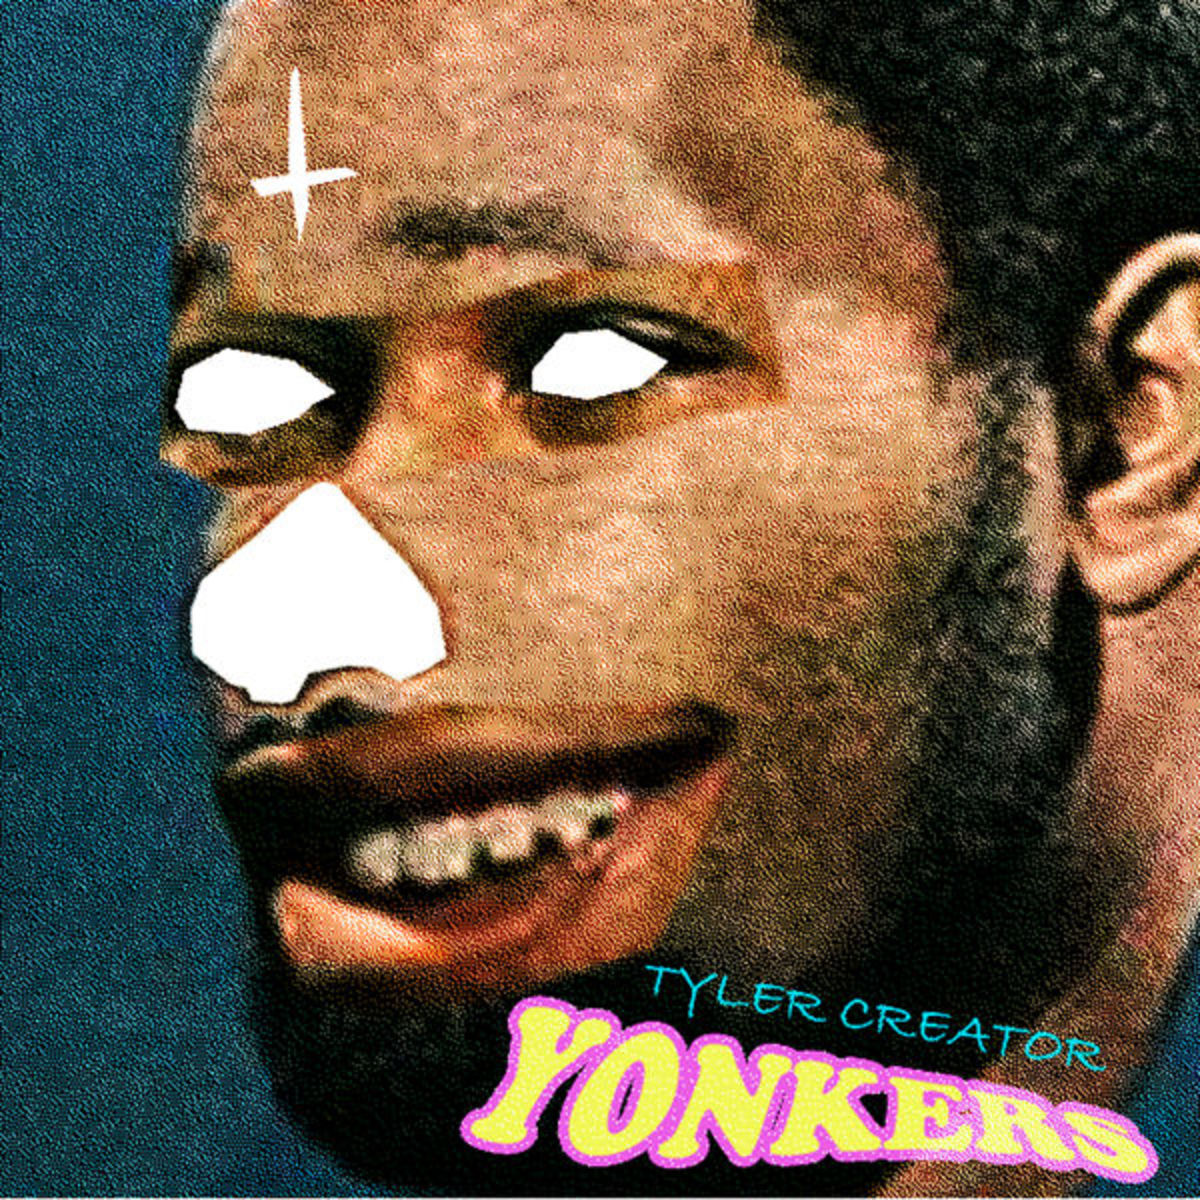 tyler-the-creator-yonkers-single-art